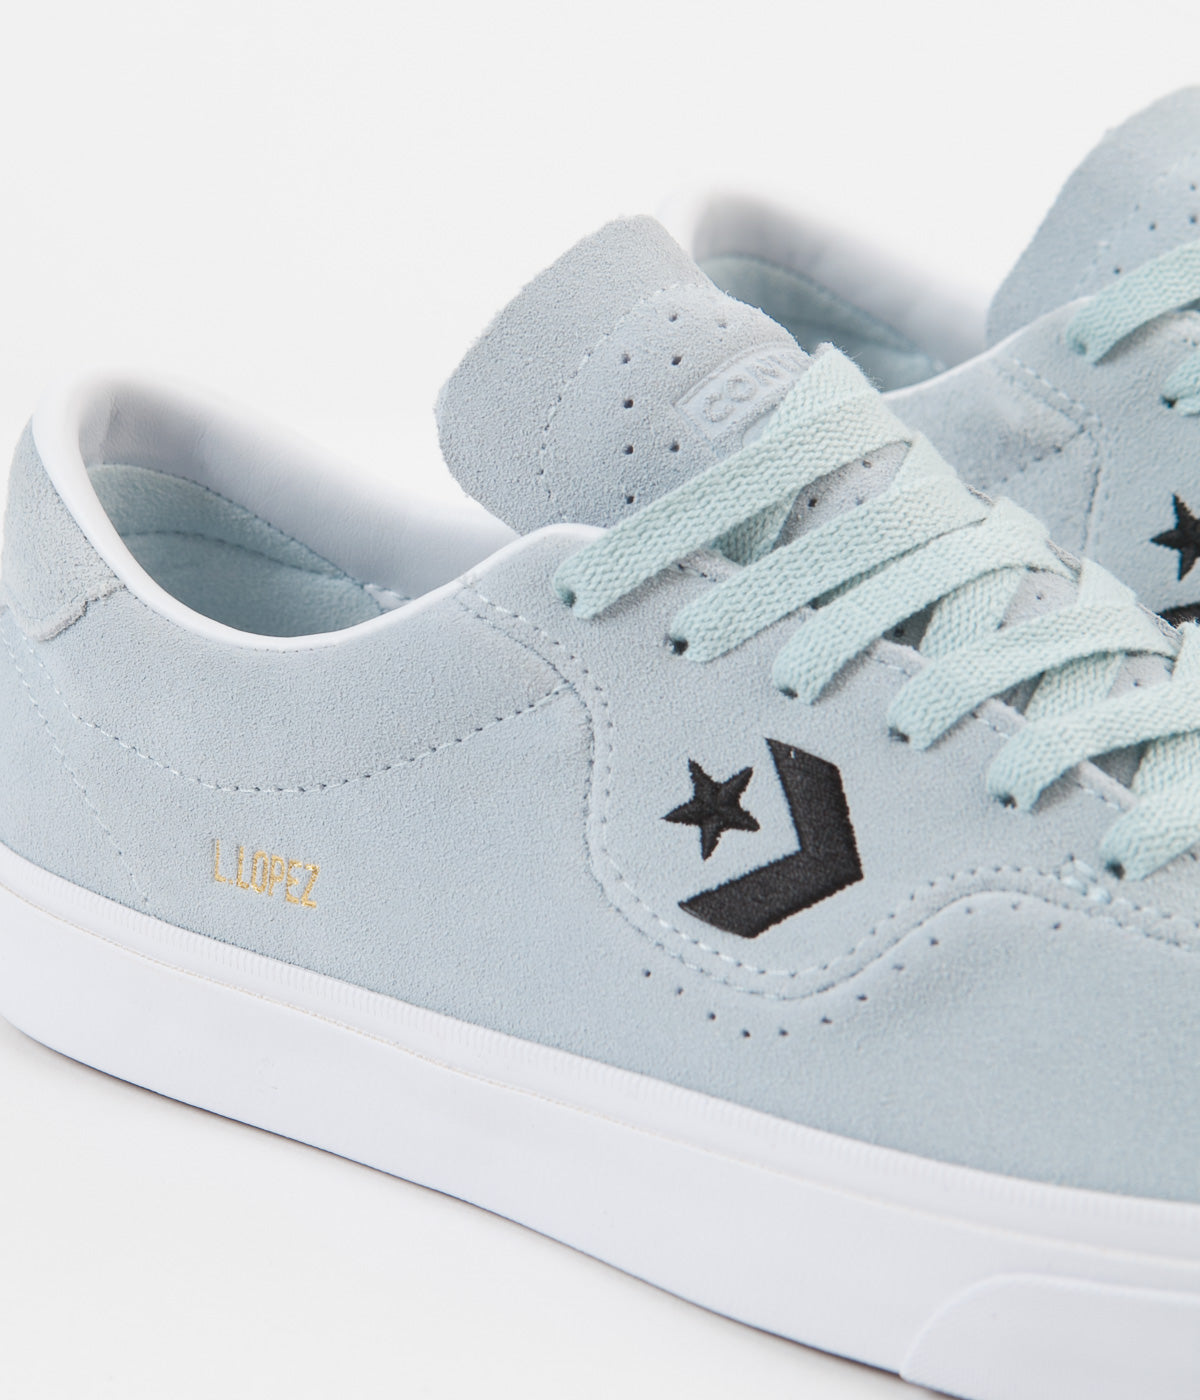 Converse Louie Lopez Pro Ox Suede Shoes - Polar Blue / Black / White